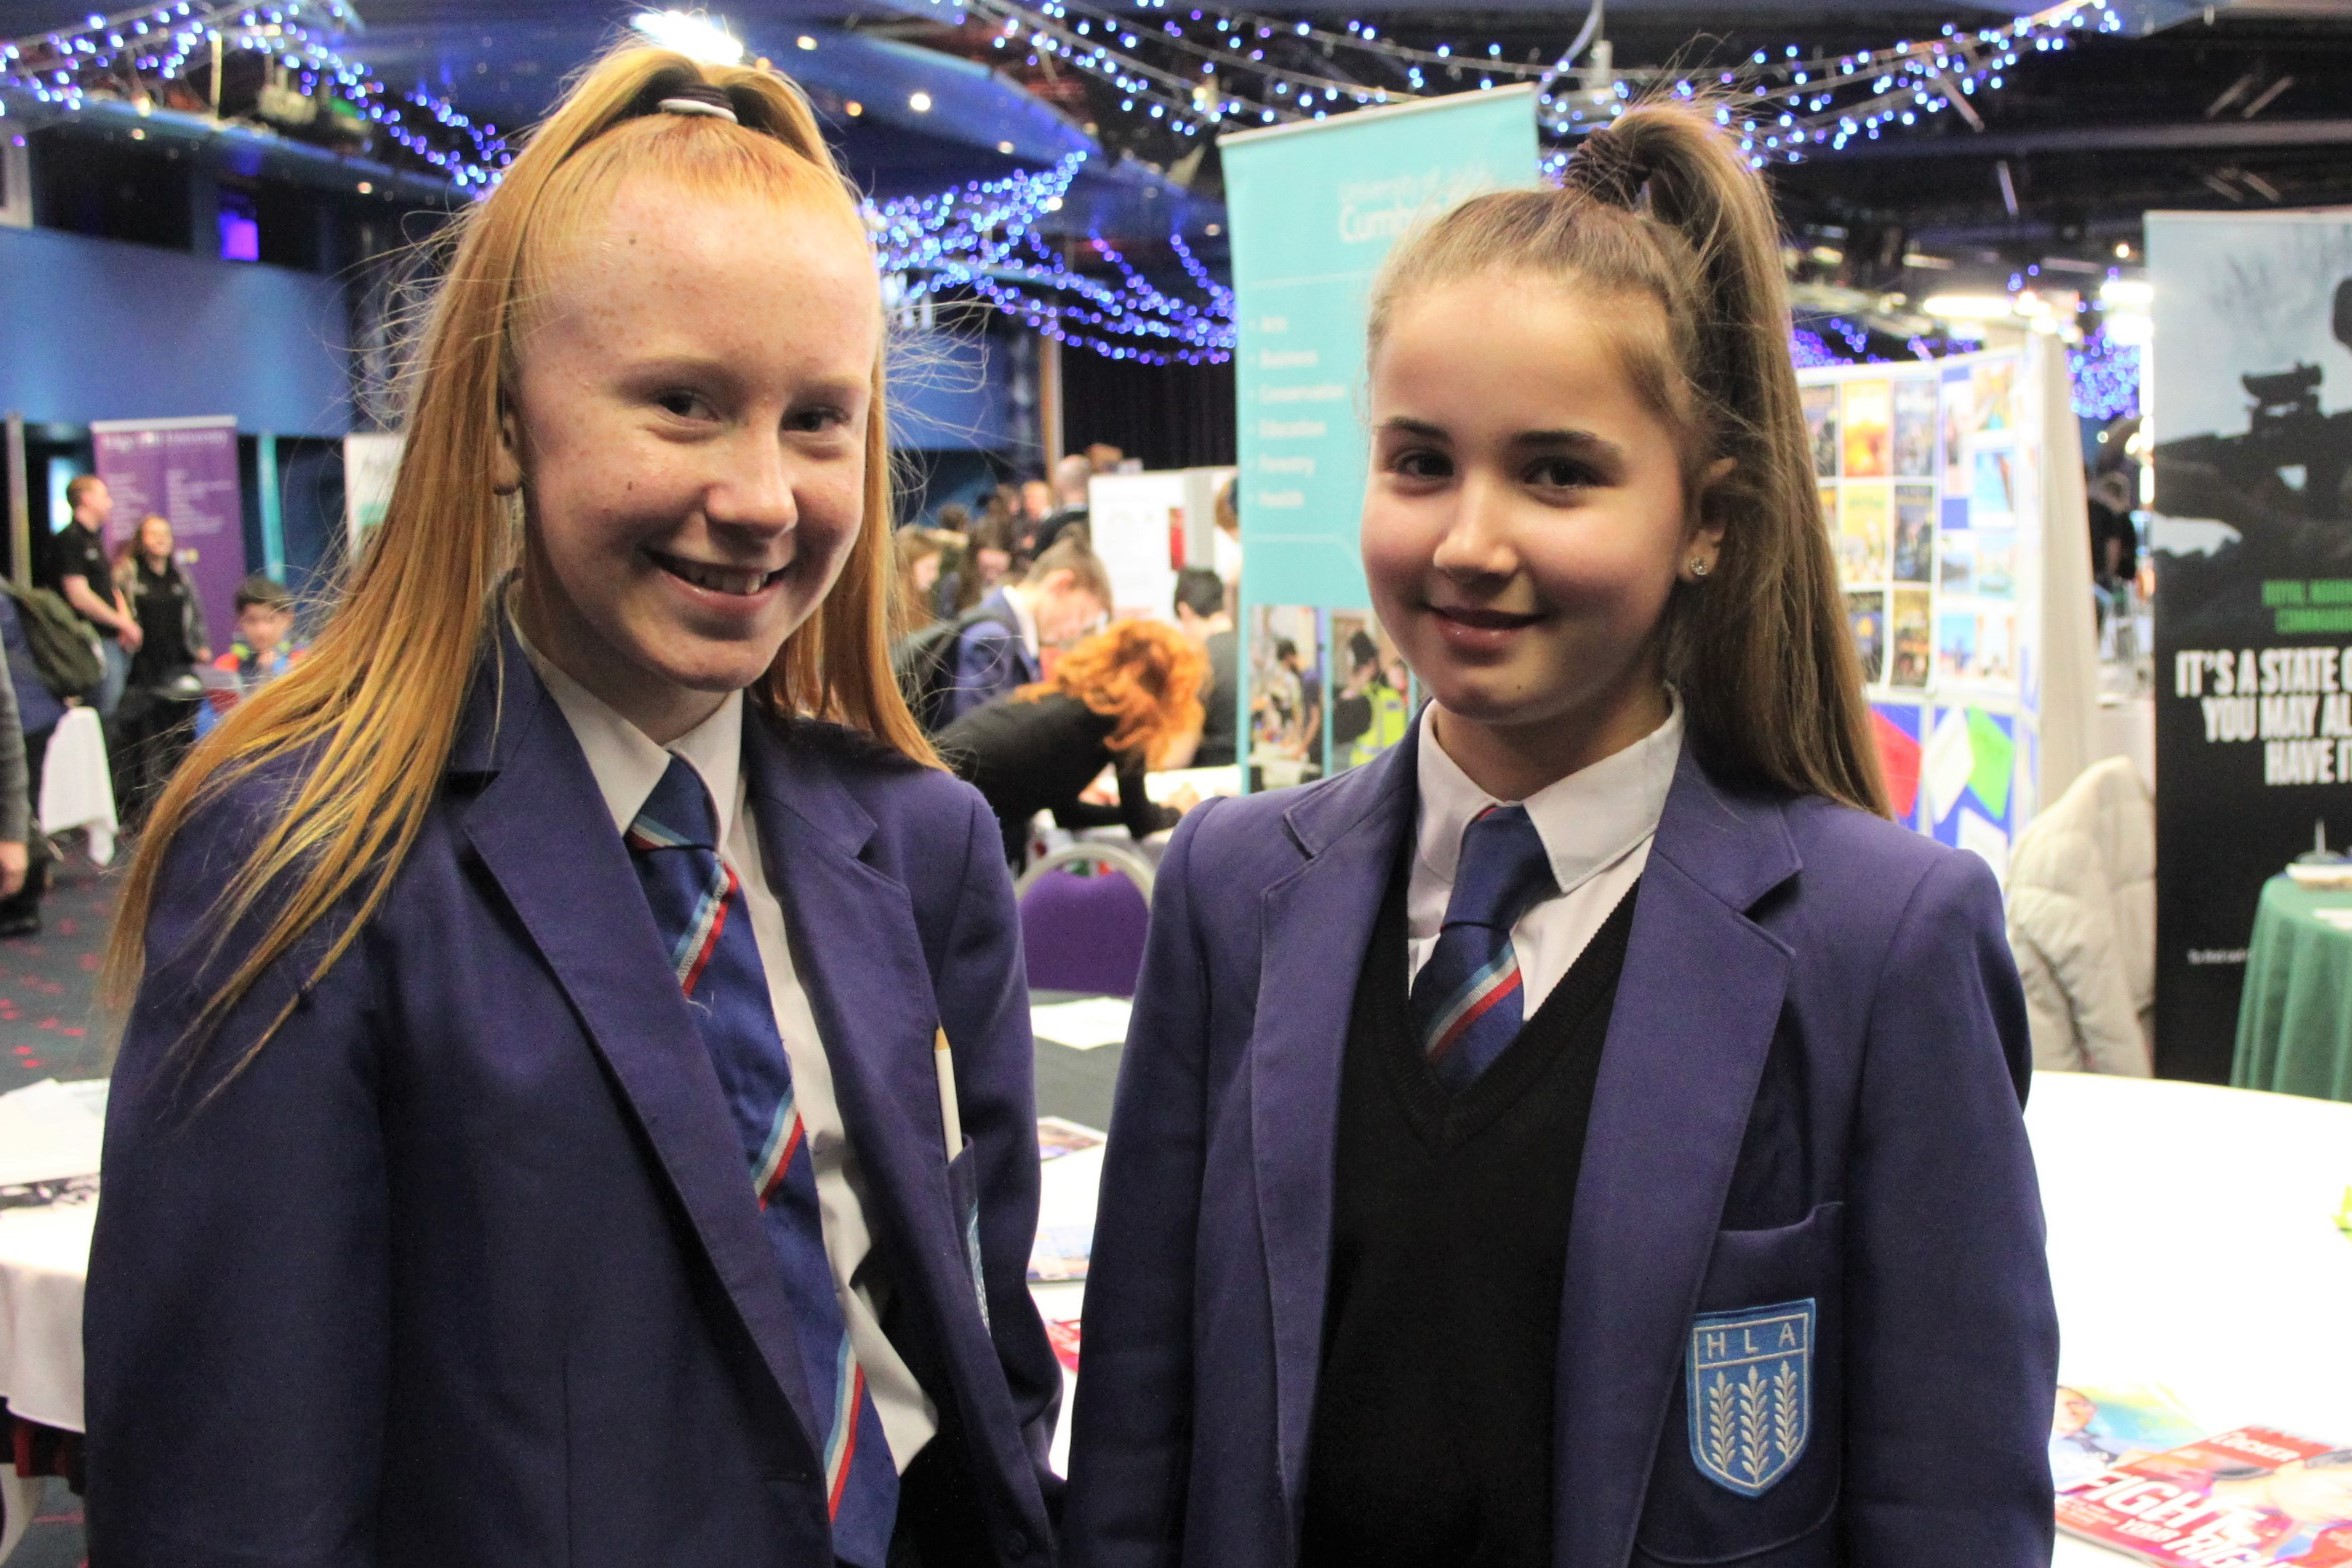 006 Jodie (L) and Millie (R) at the careers fair